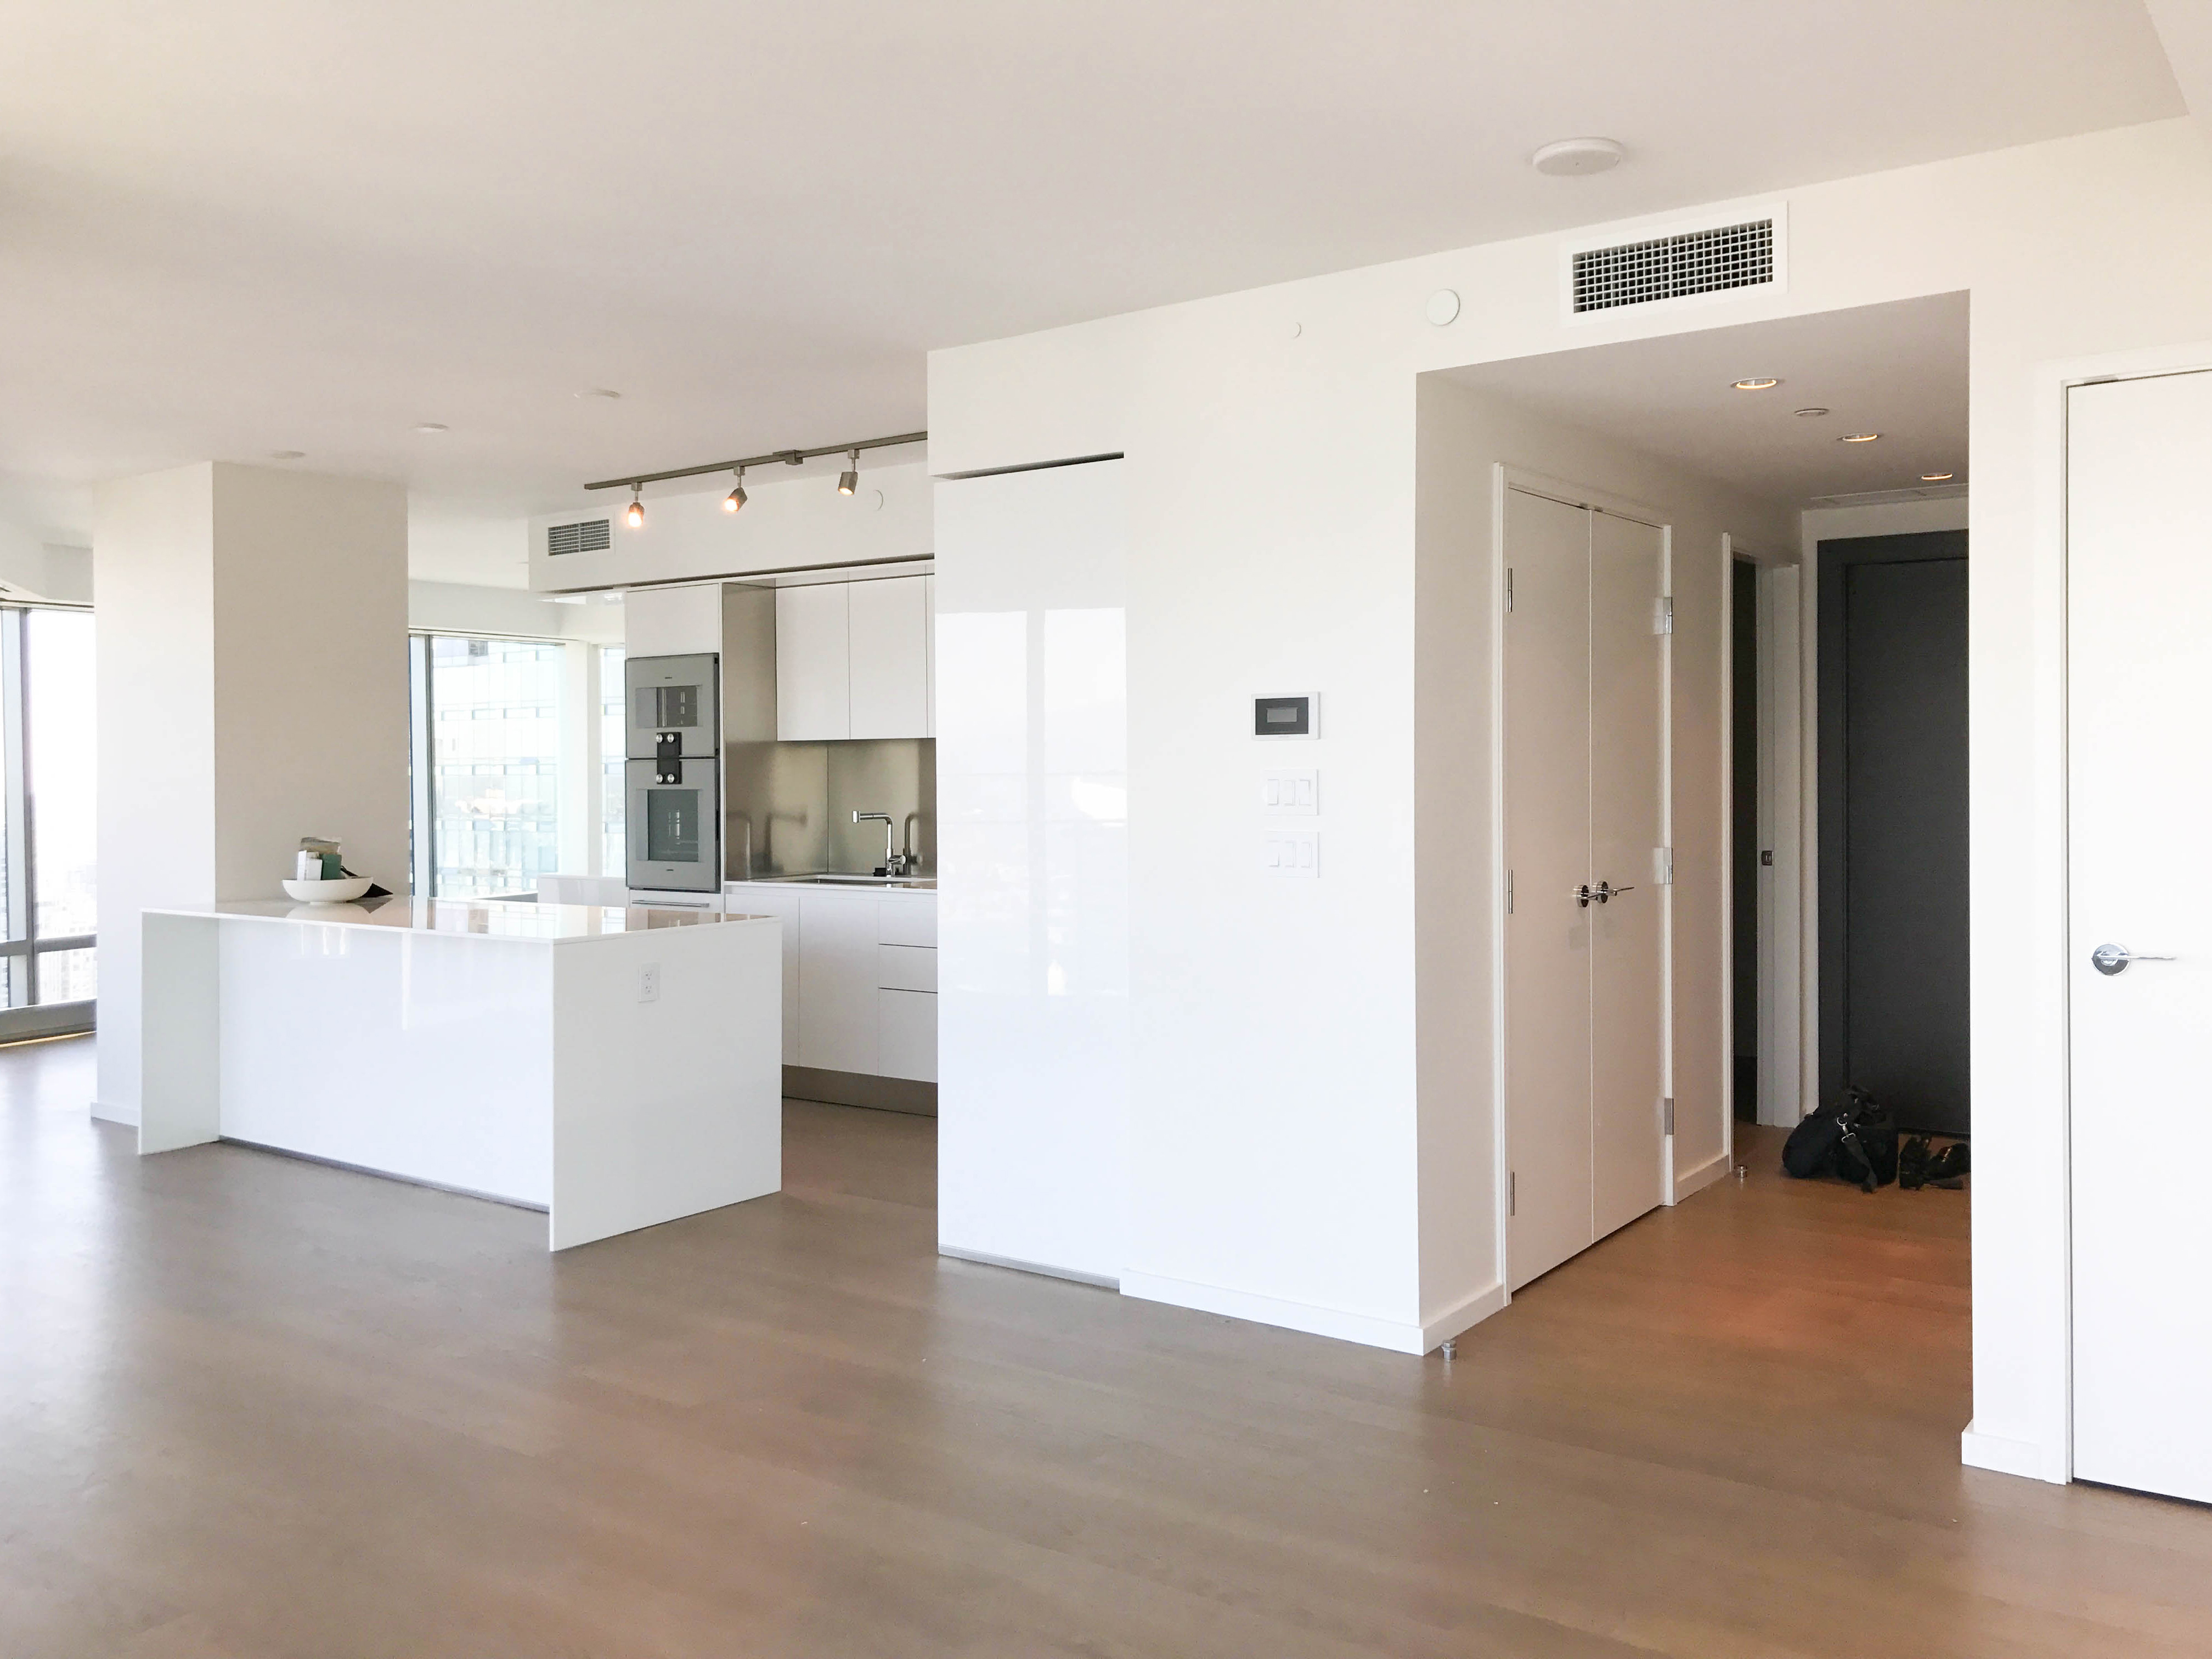 UNFURNISHED TWO BEDROOM PROPERTY IN THE LUXURIOUS TRUMP RESIDENCES VANCOUVER